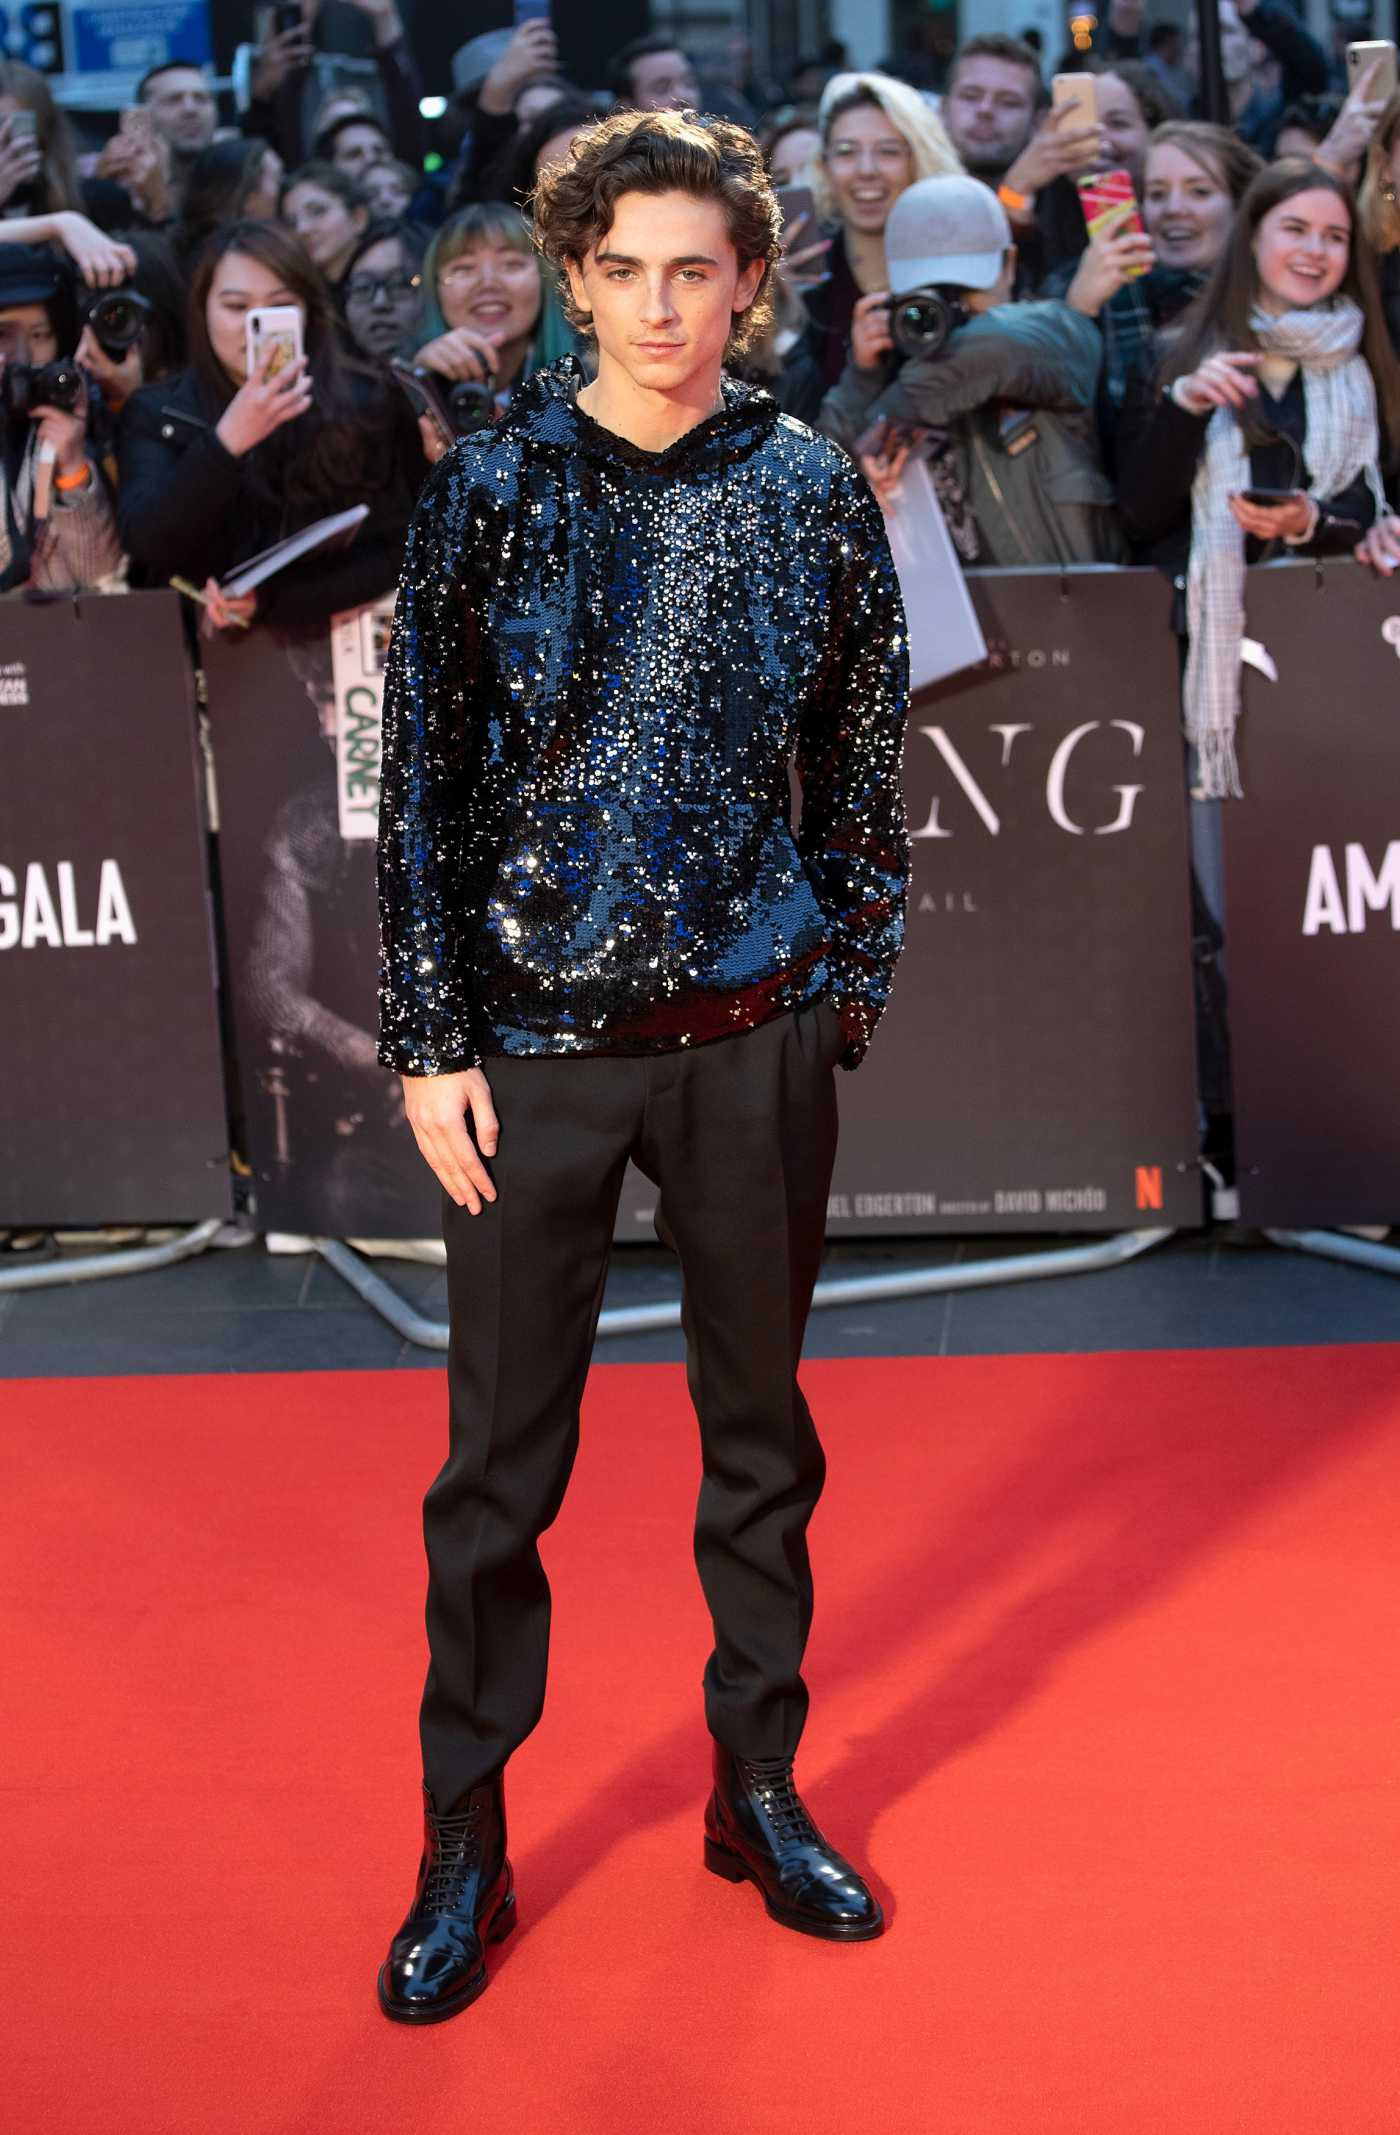 Timothee Chalamet Attends The King Premiere During the 63rd BFI London Film Festival in London 10/03/2019